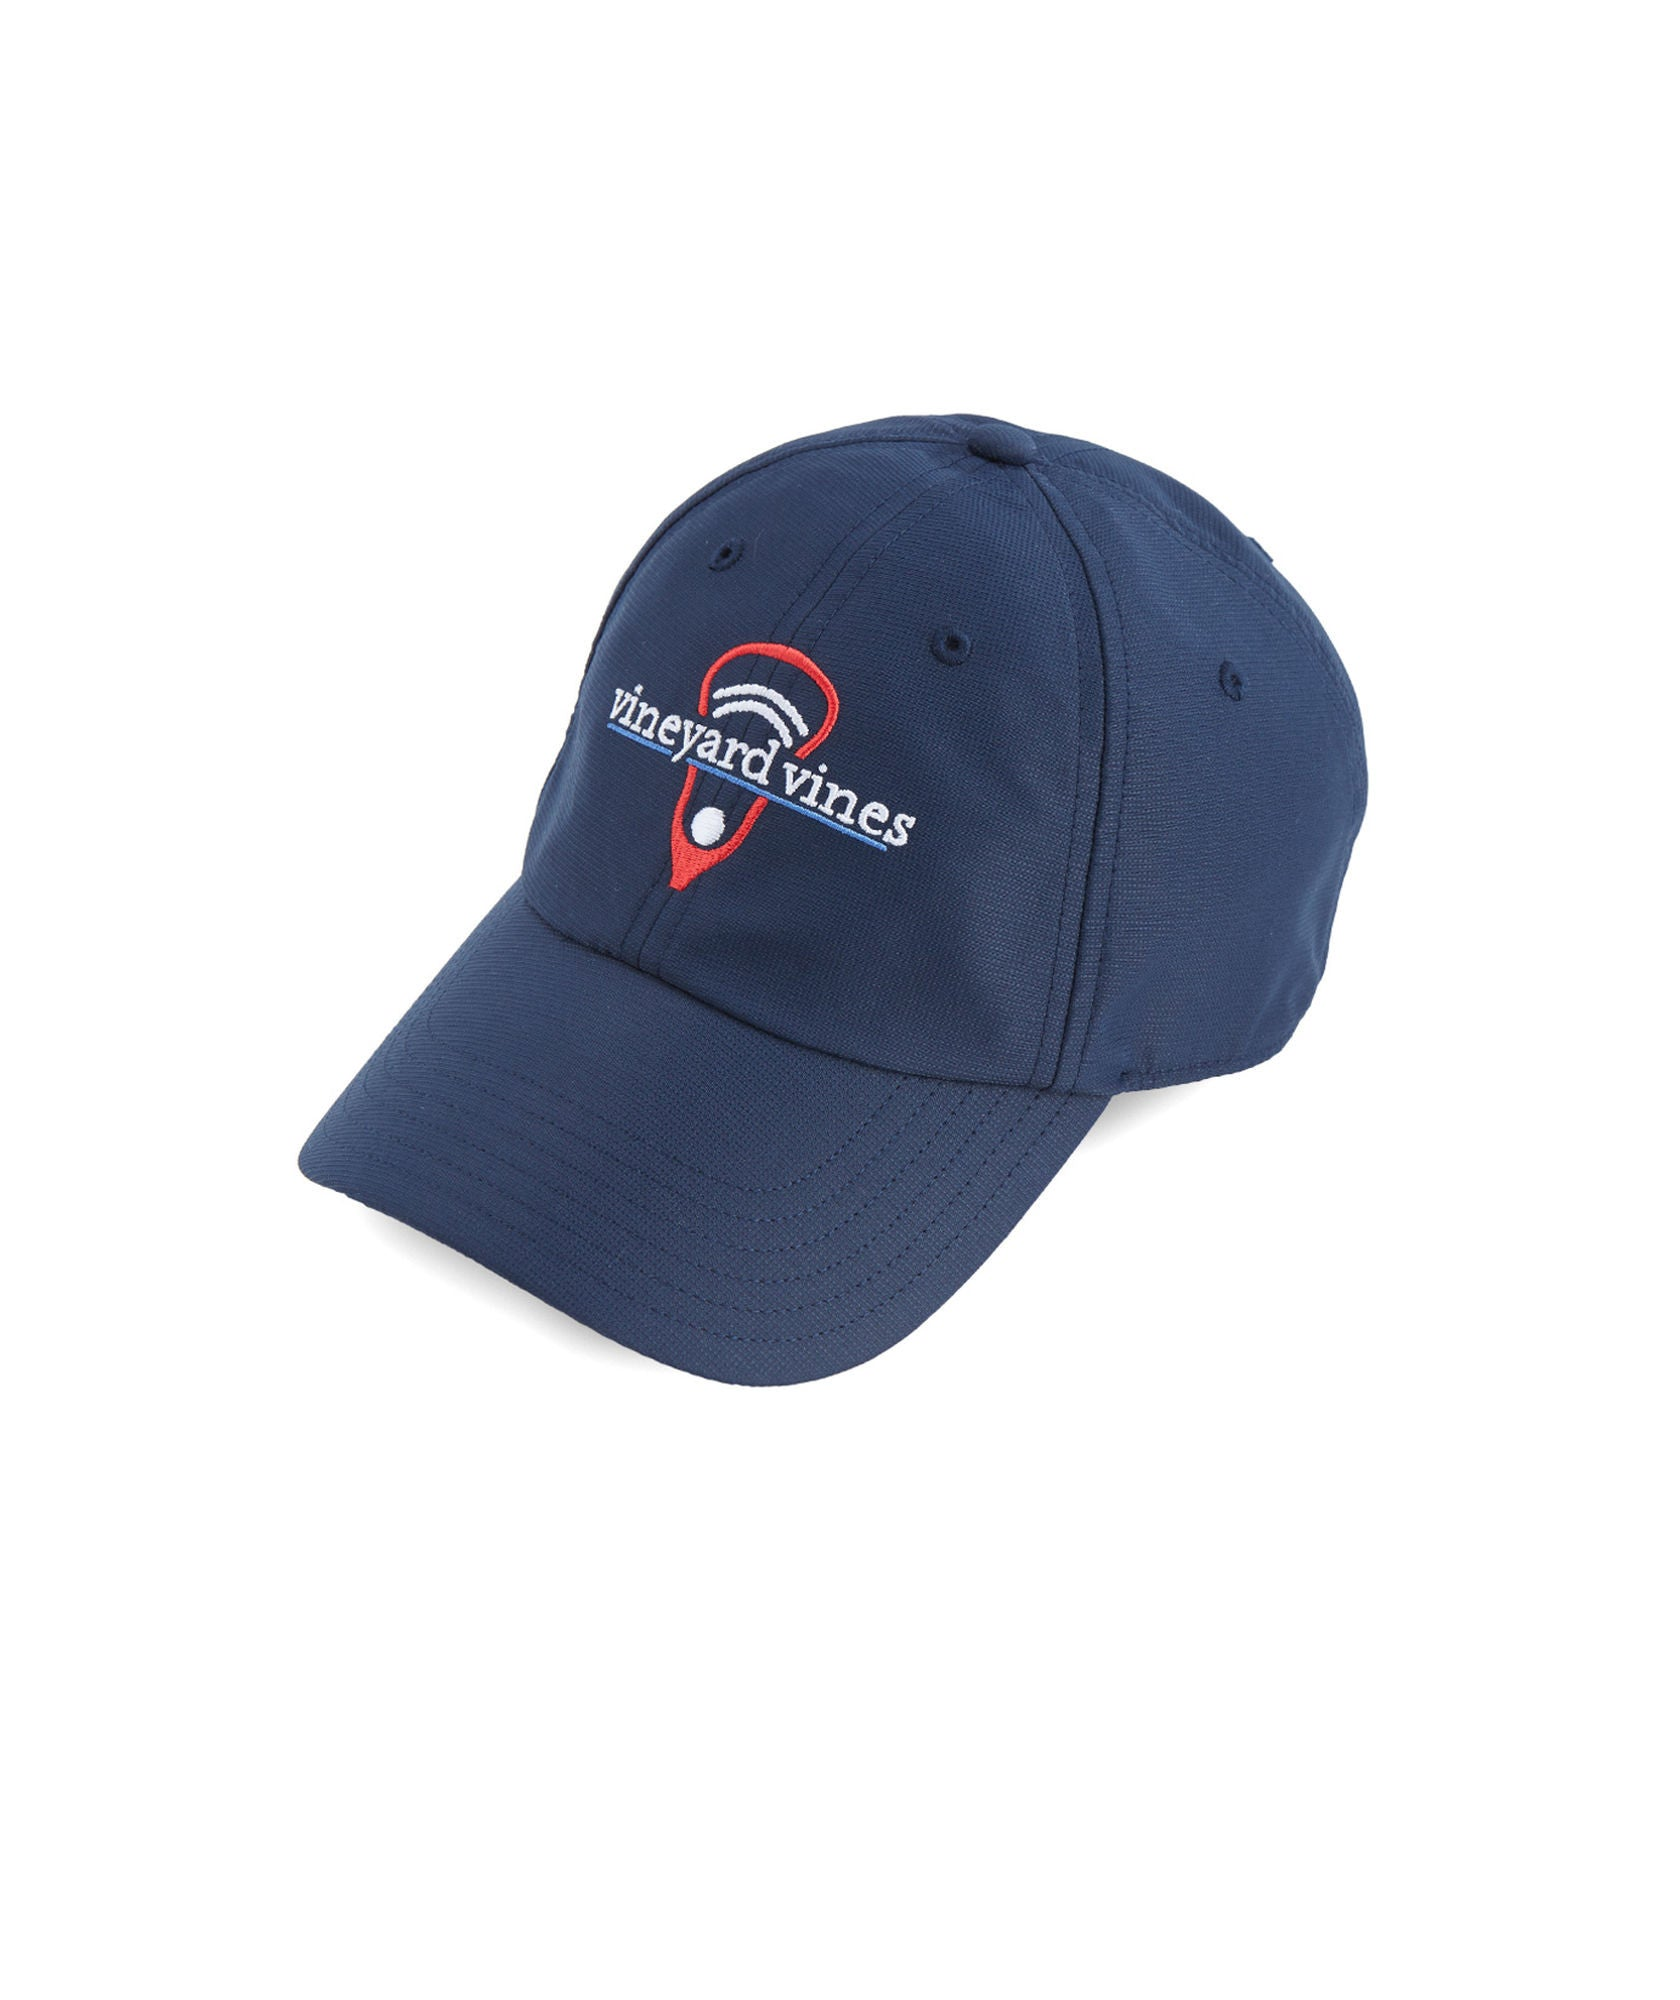 Vineyard Vines Lax Performance Hat - Vineyard Navy Front View